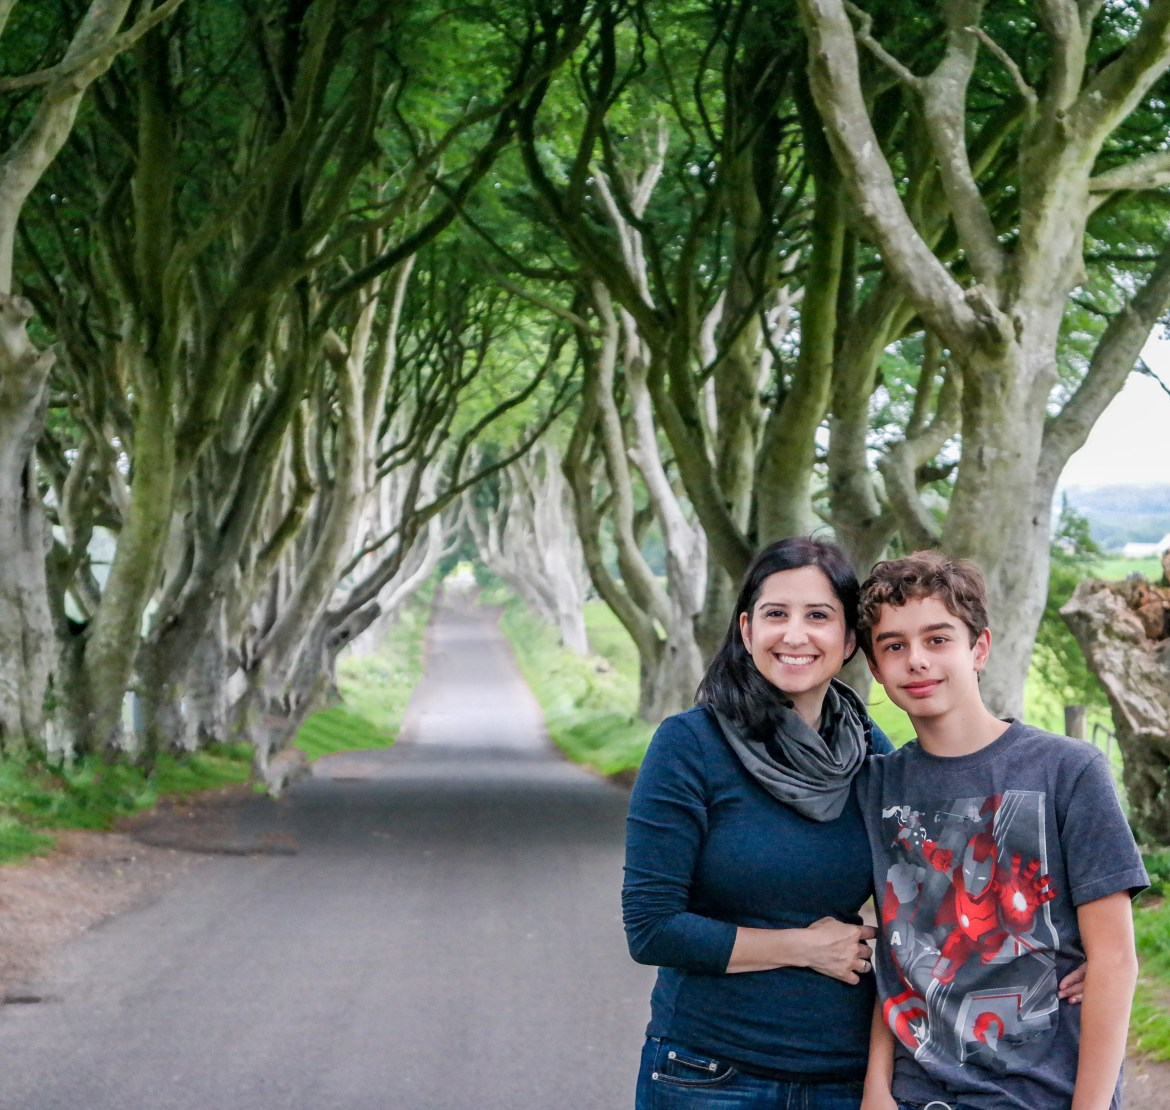 #darkhedges